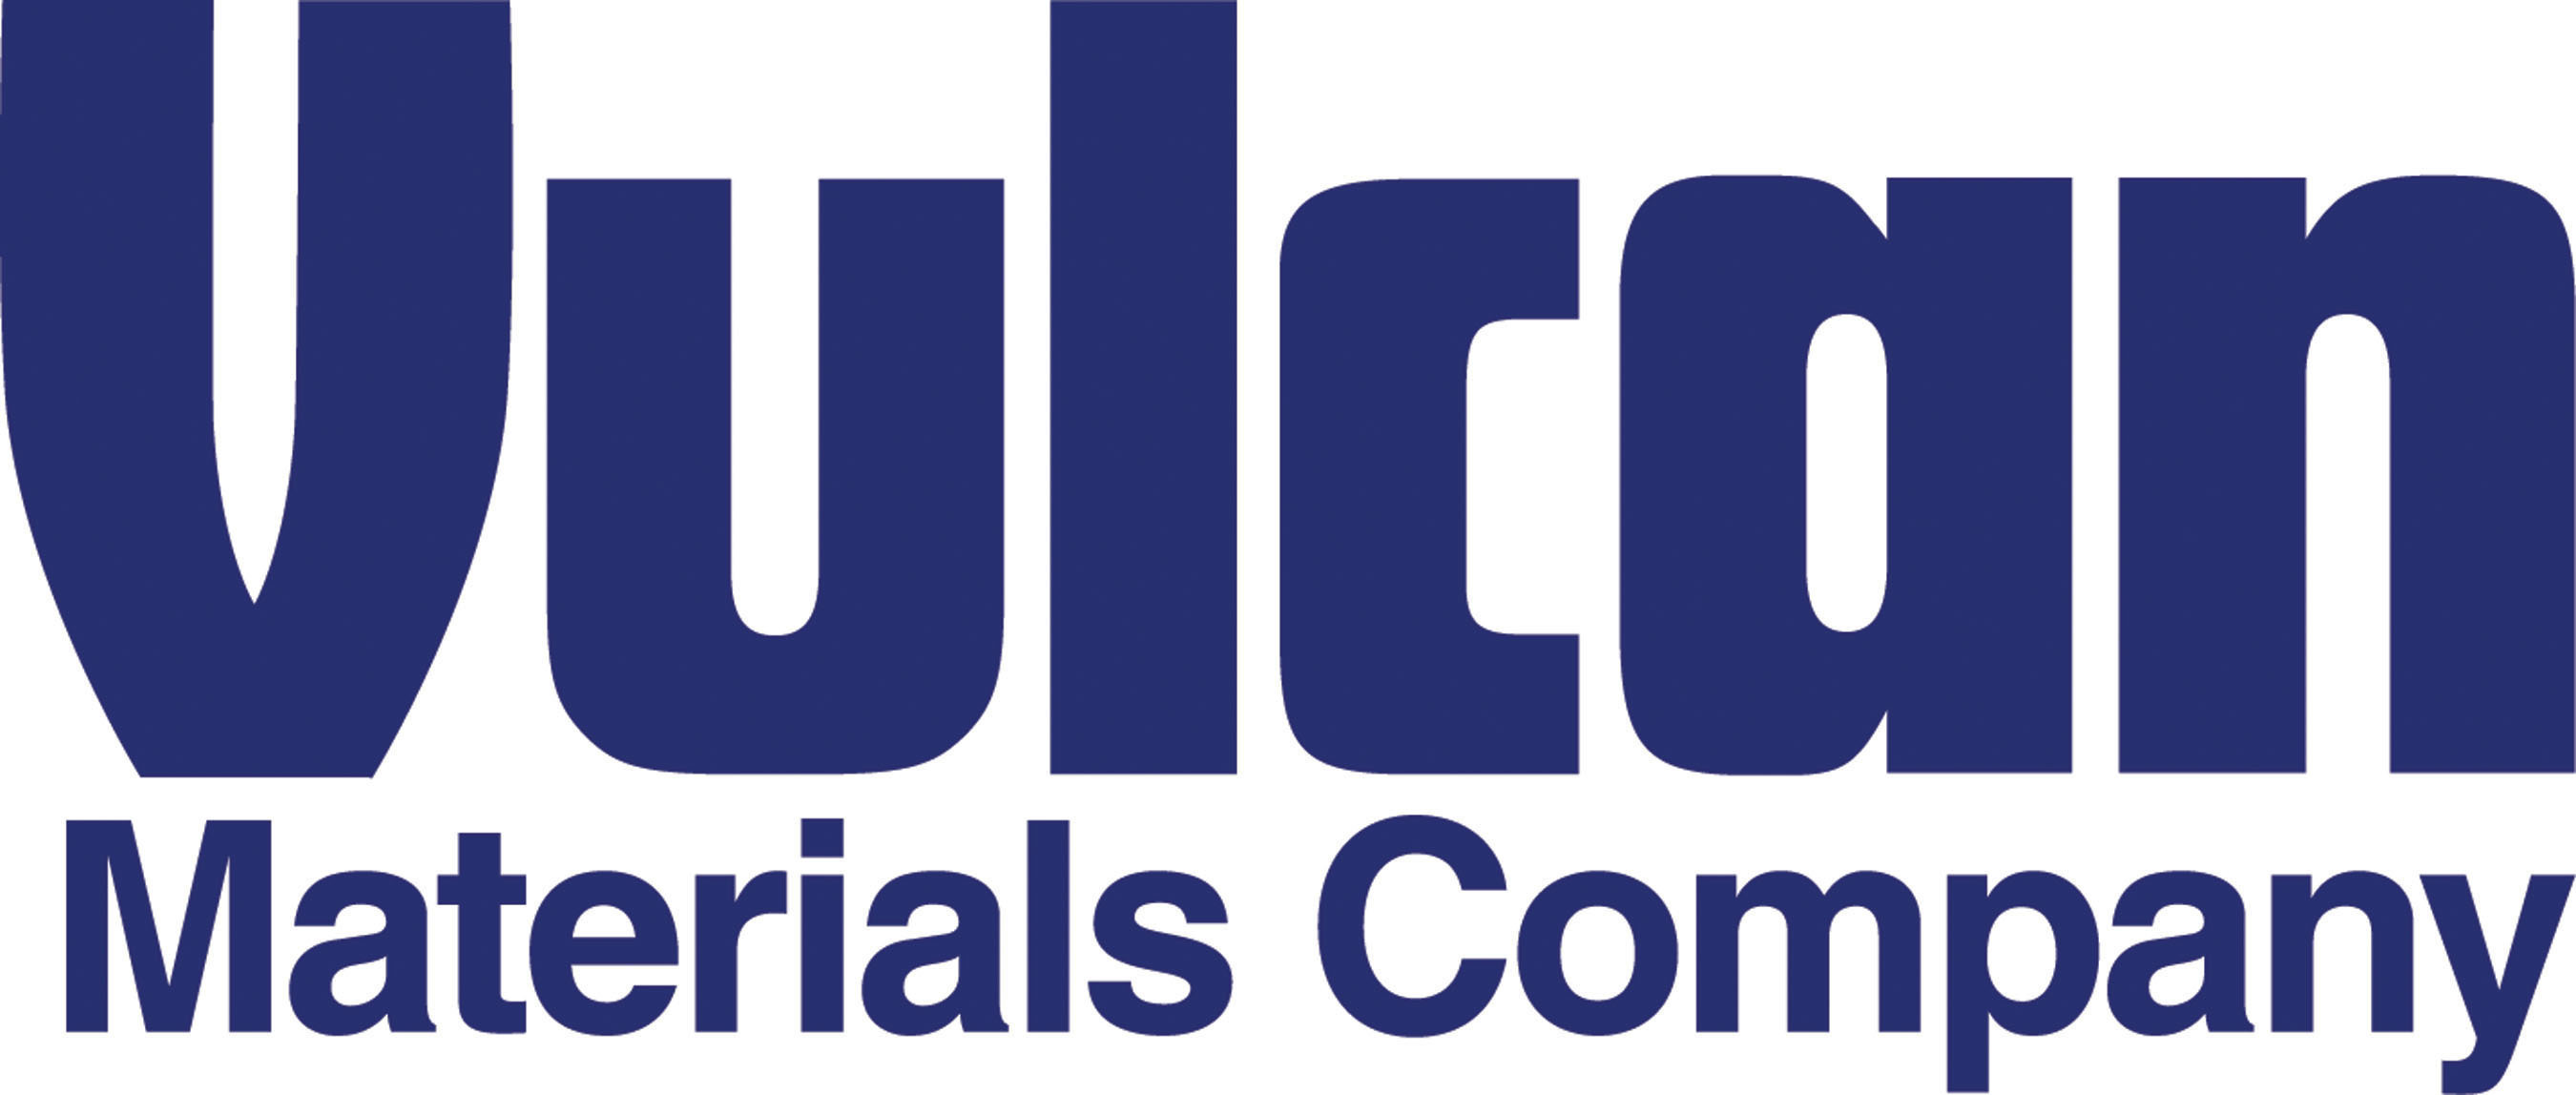 Vulcan Materials Announces Retirement Of Chairman Donald M. James